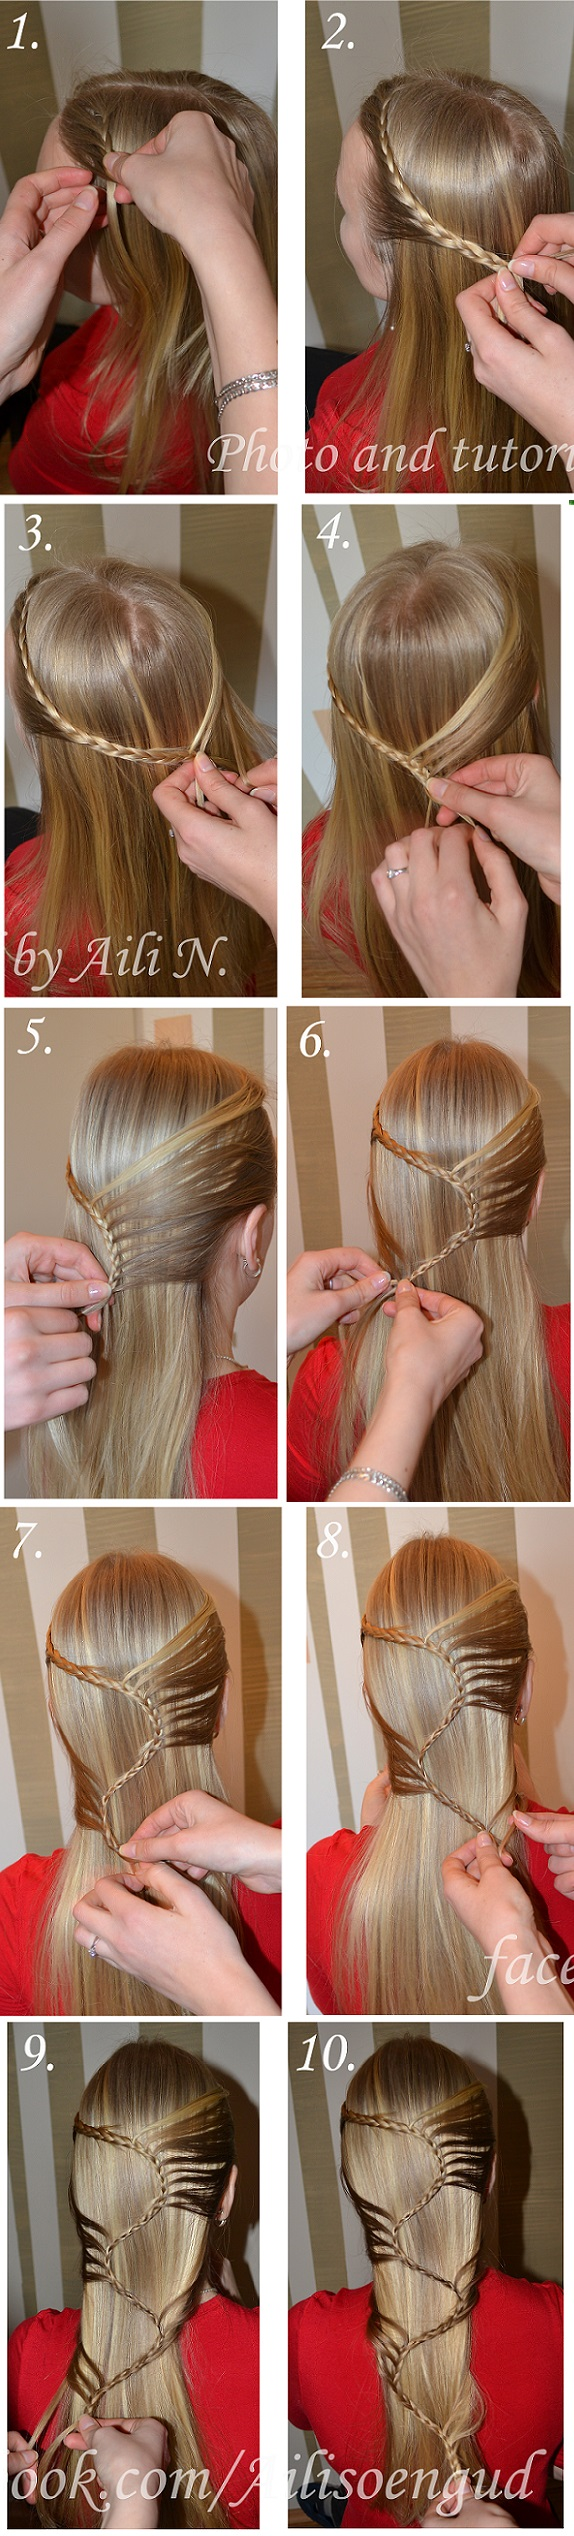 long hair hairstyle